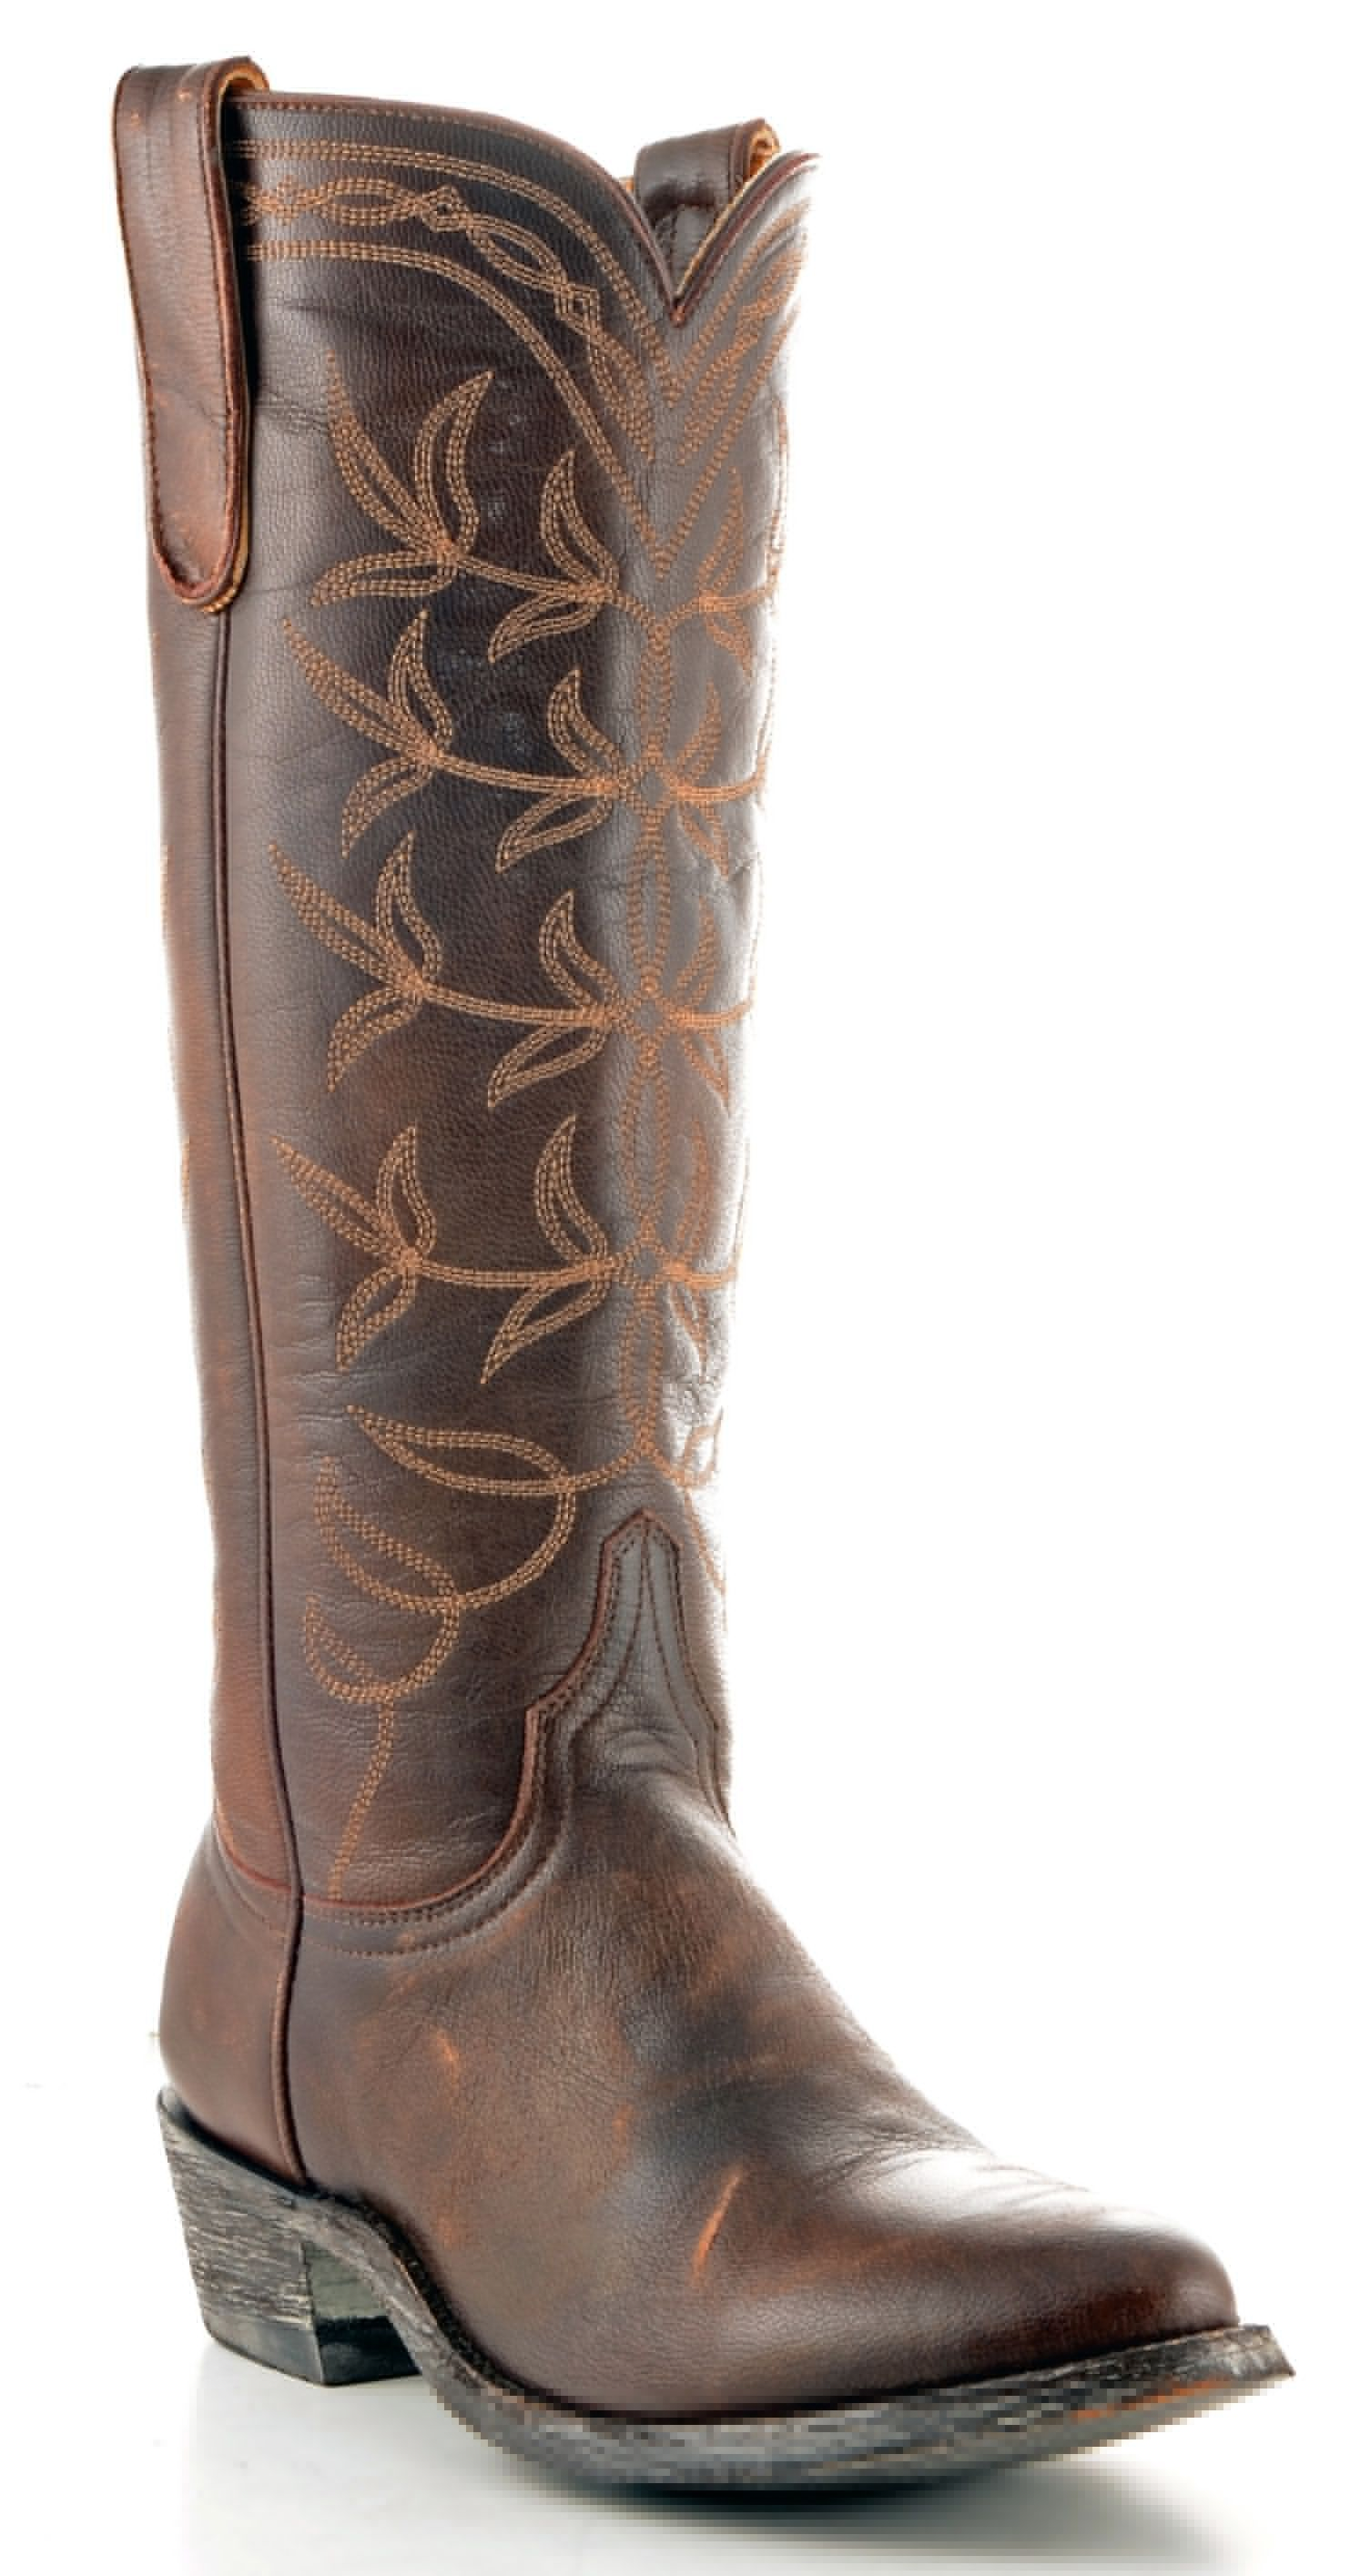 Womens Old Gringo Polo Brush Off Boots Brown Style L194-15 | Old Gringo | Allens Boots | $449